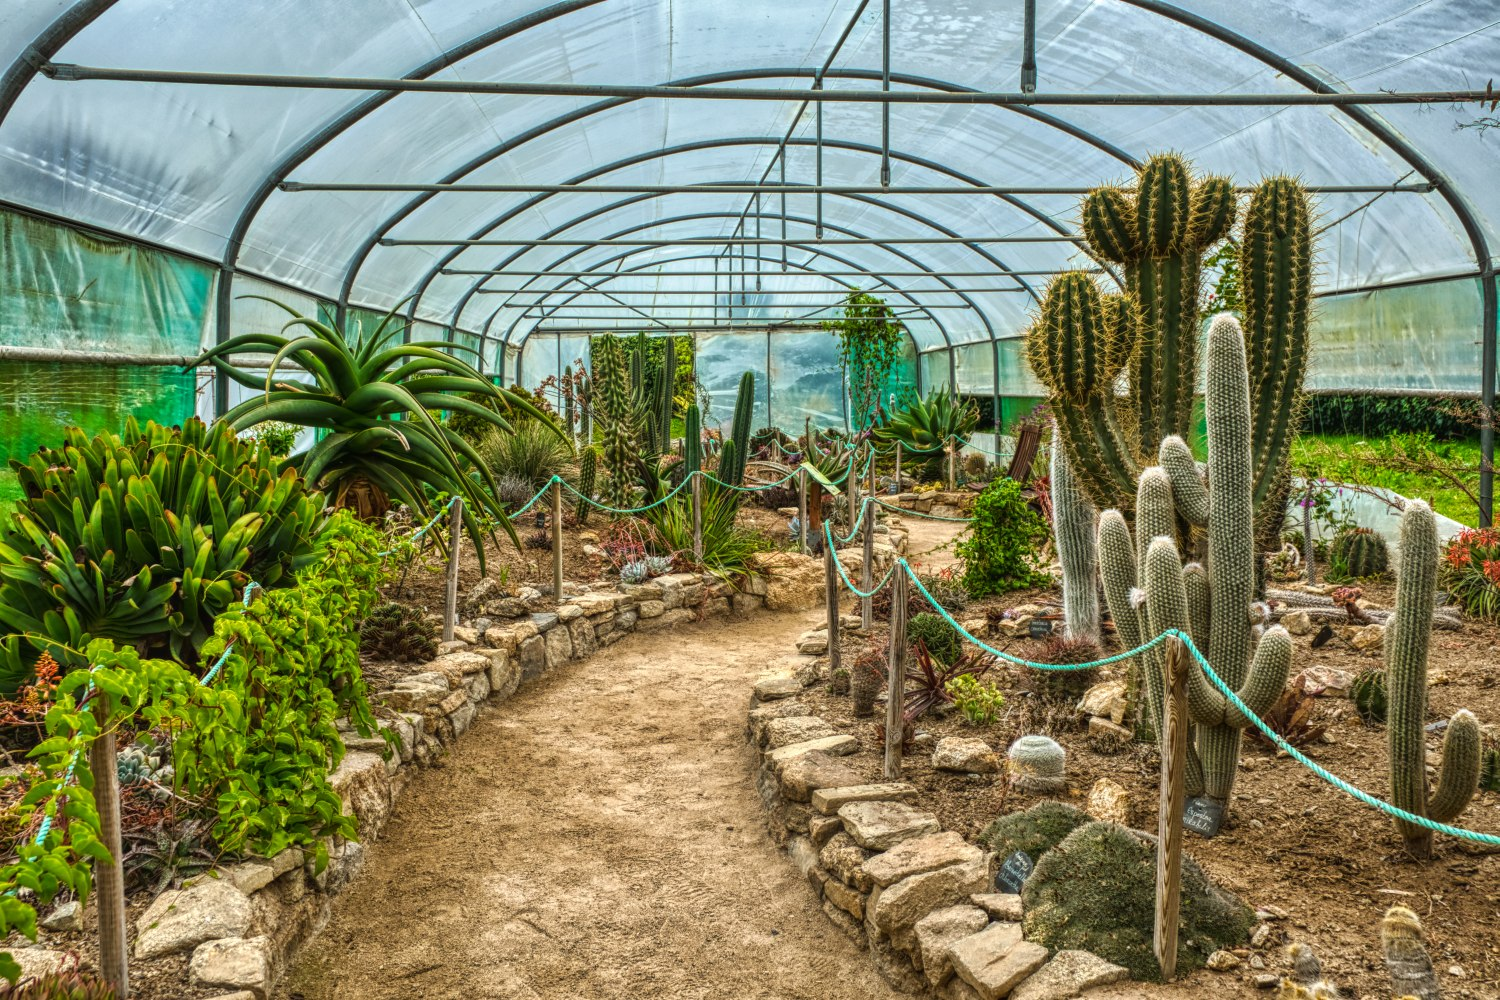 Cactus pavilion in the botanical garden of Roscoff